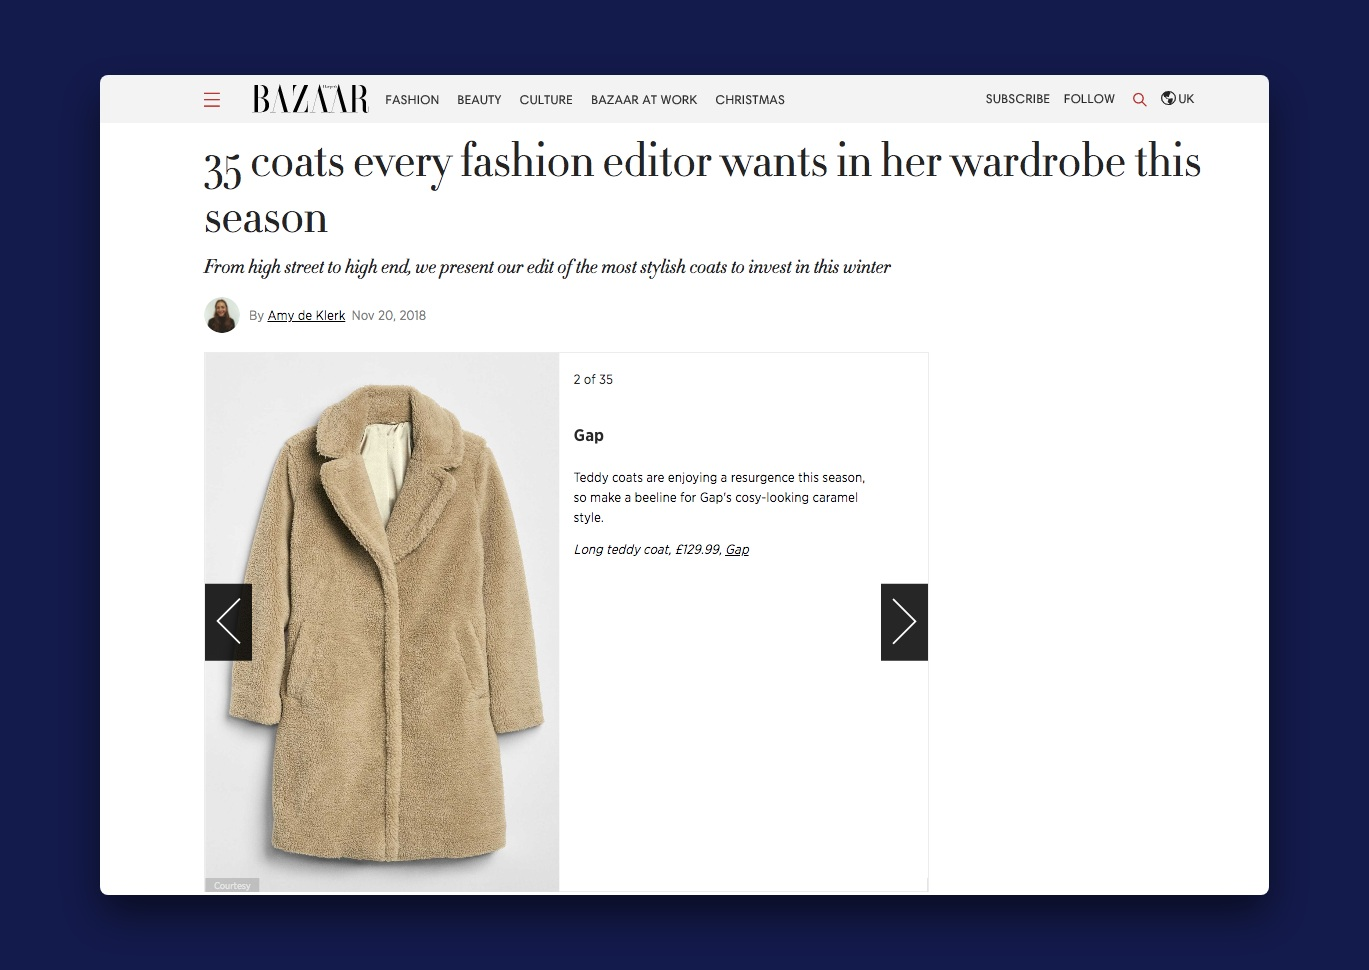 A photo blog post by Harper's Bazaar labelled 35 coats every fashion editor wants in her wardrobe this season